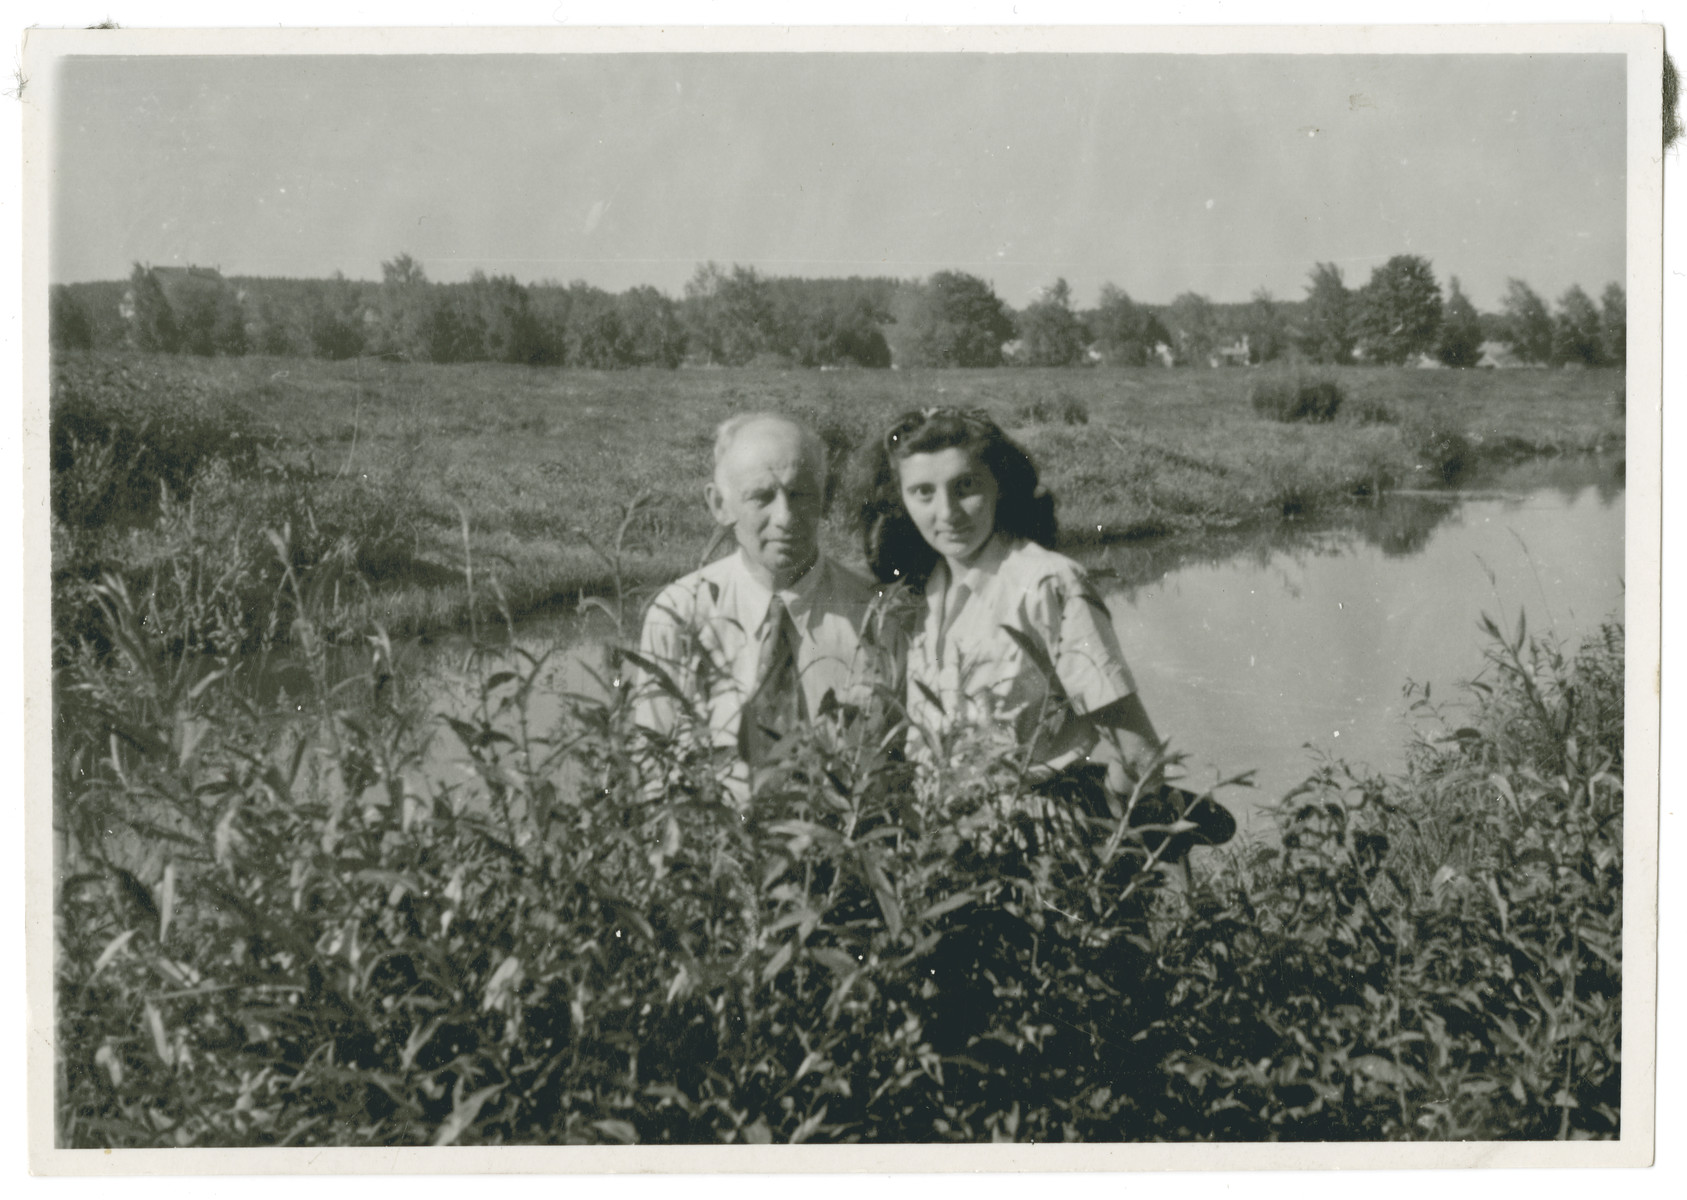 Vera Spitz poses by a stream or lake next to her father Bela.